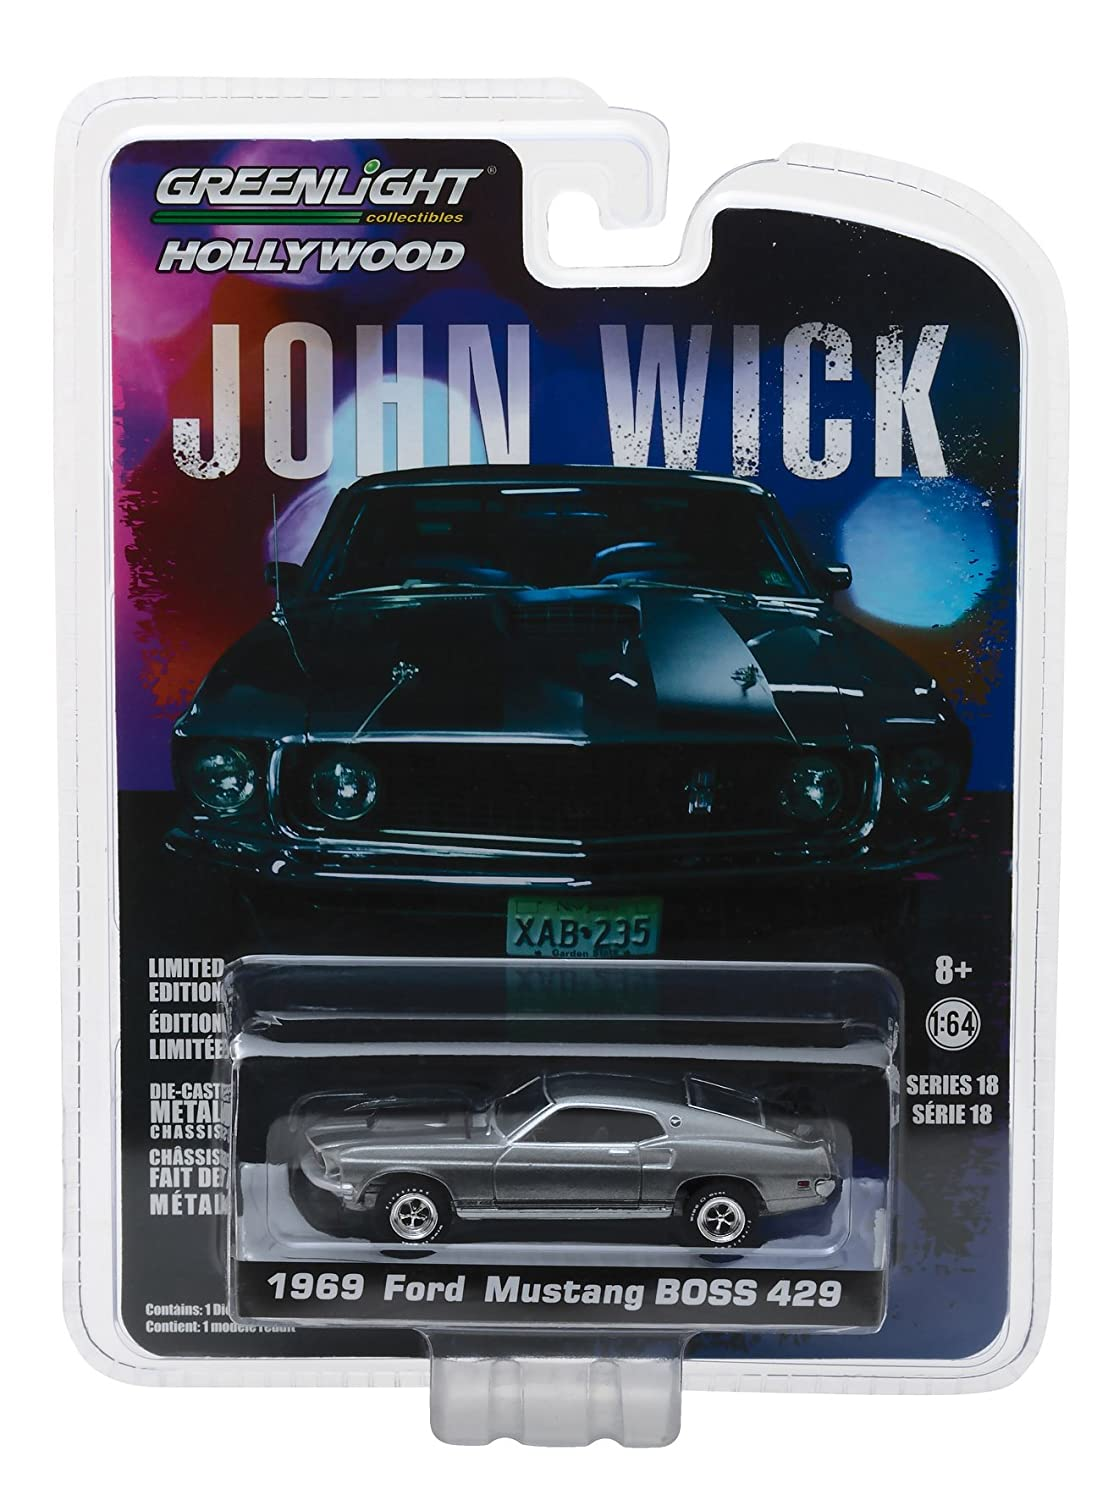 Greenlight 1 64 Hollywood Series 18 John Wick Movie 2014 1969 Ford Mustang Boss 429 Die Cast Vehicle